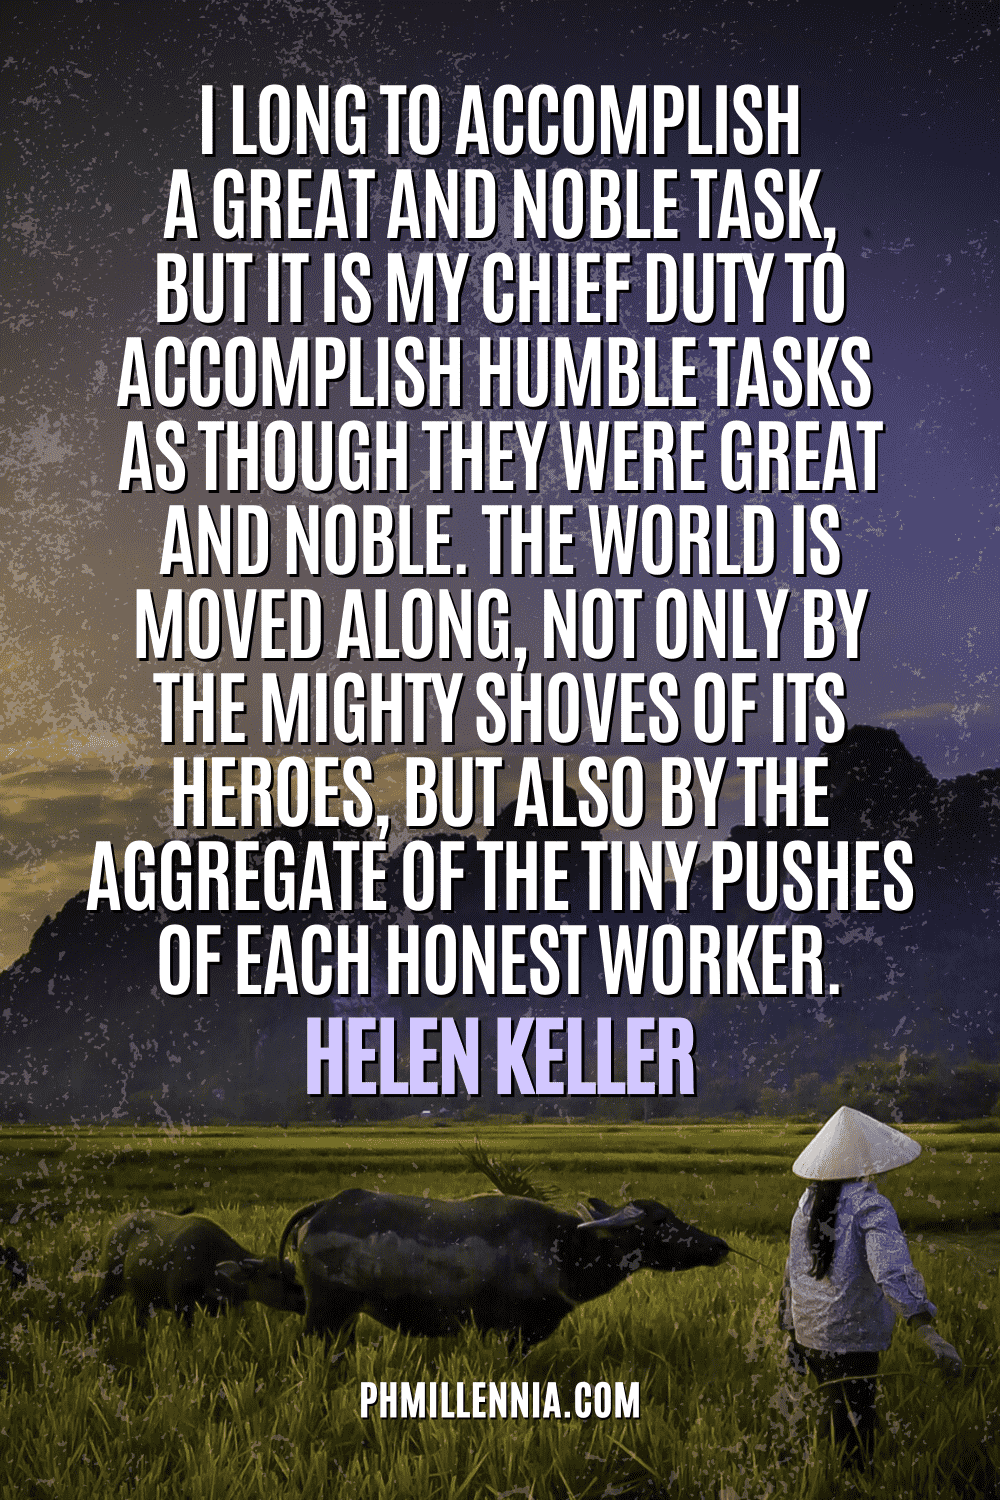 """A graphic containing text on an image of a woman farmer leading a herd of buffalo through a rice field at dawn, intended as a Pinterest Pin for the article """"199 Quotes on Success to Inspire You to Greatness"""" on phmillennia.com"""